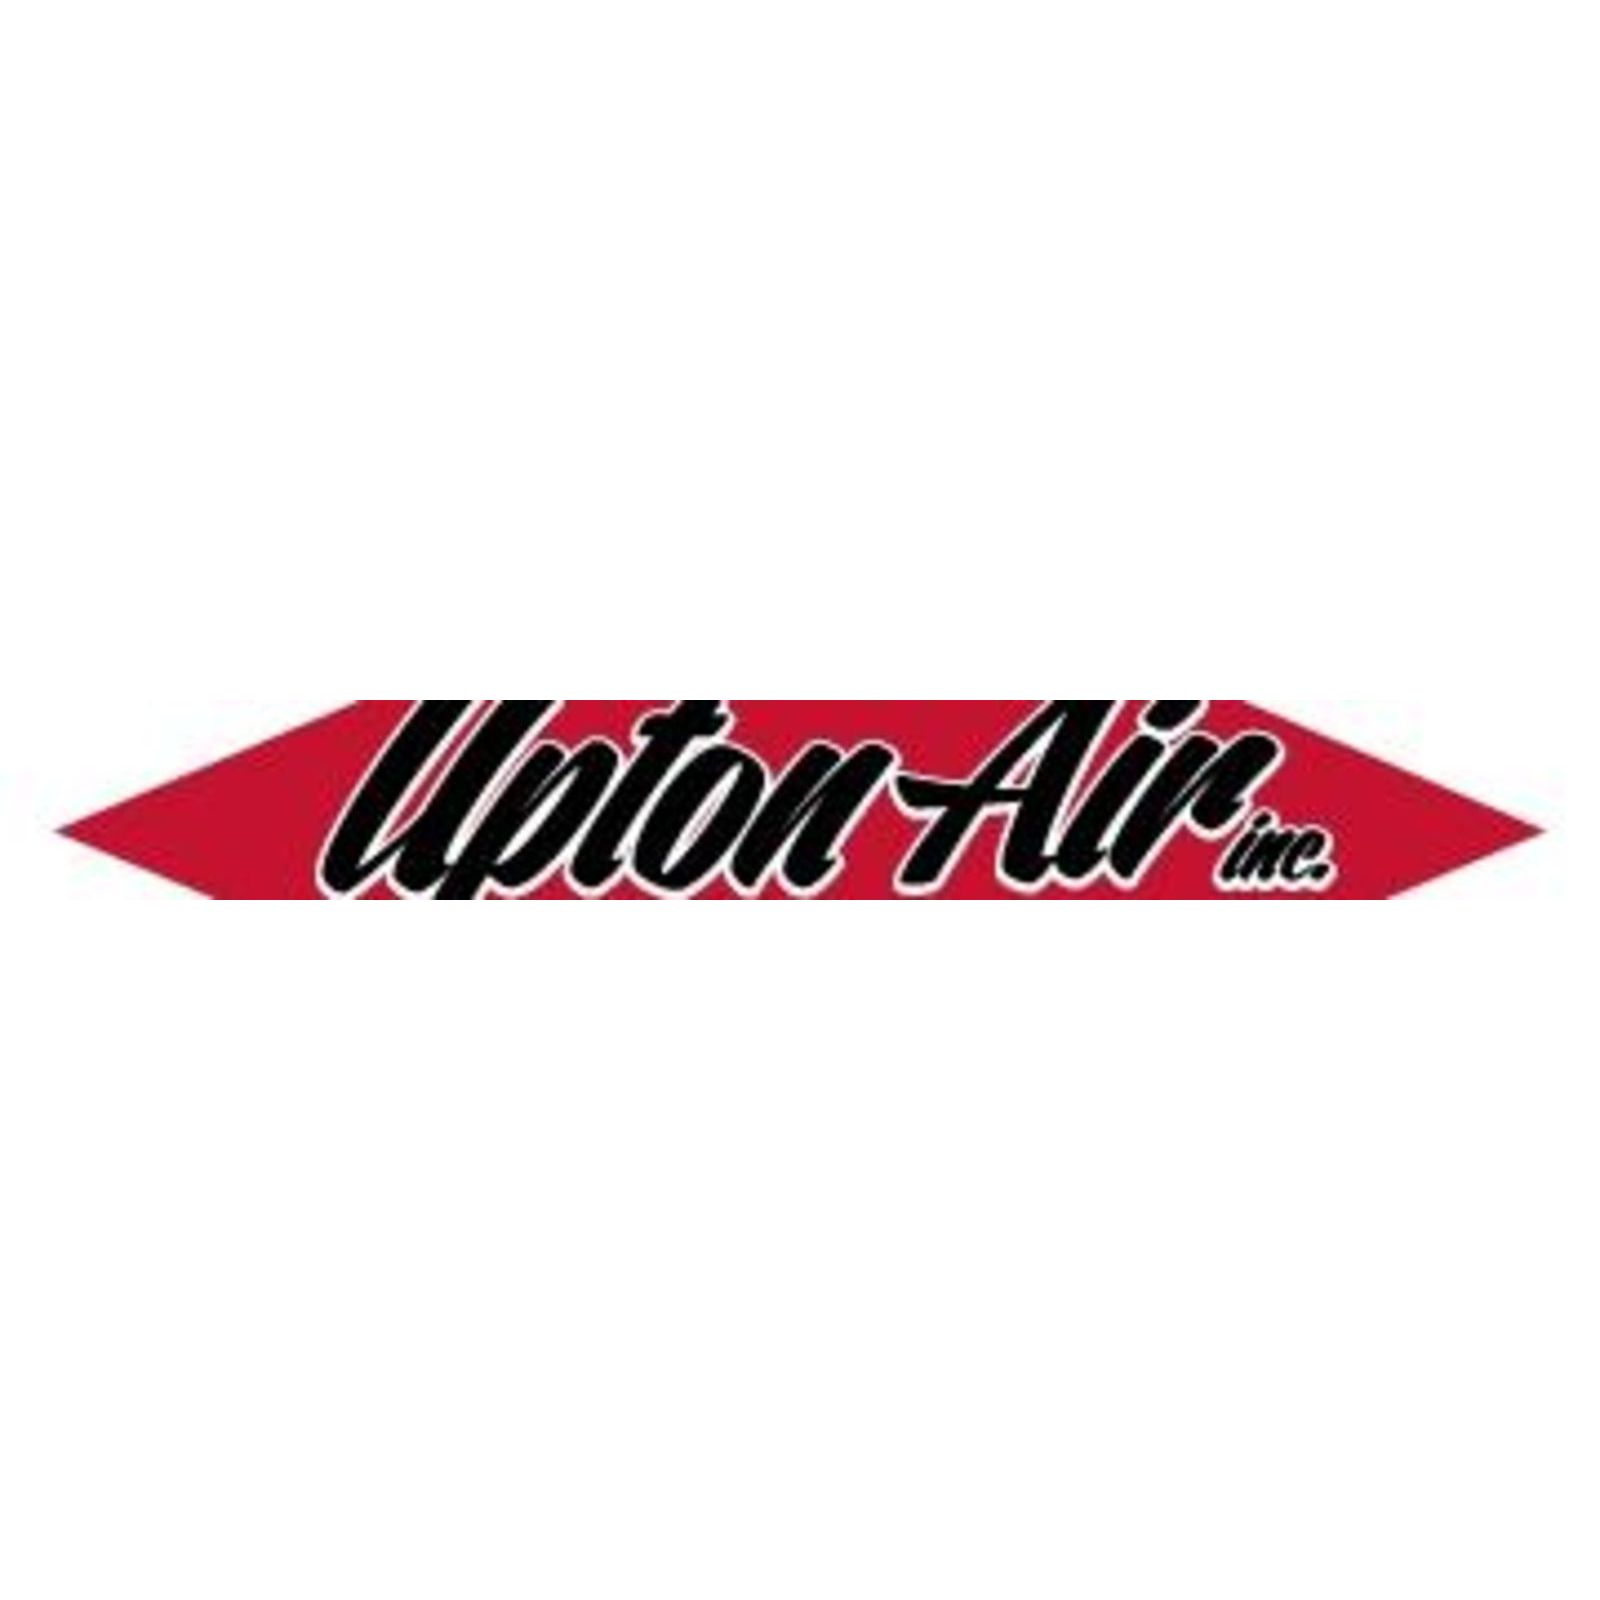 Uptonair inc/Upton Heating and Air